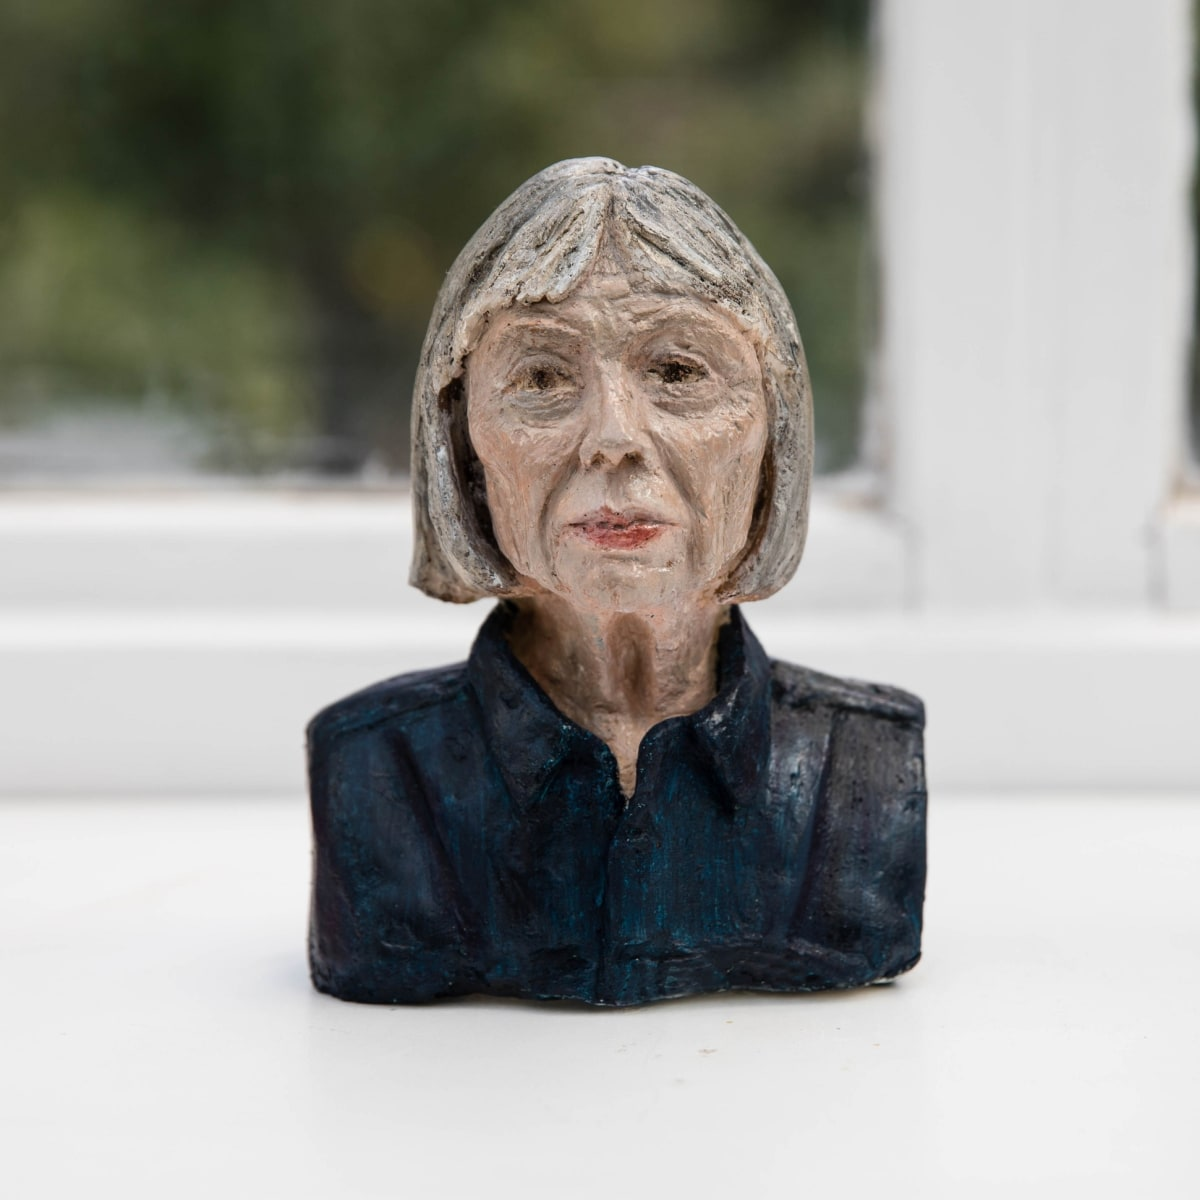 Nicole Farhi Joan Didion ciment fondu and acrylic; hand-painted bronze casts available to purchase 18 x 13 x 6 cm edition of 7 + 3 APs